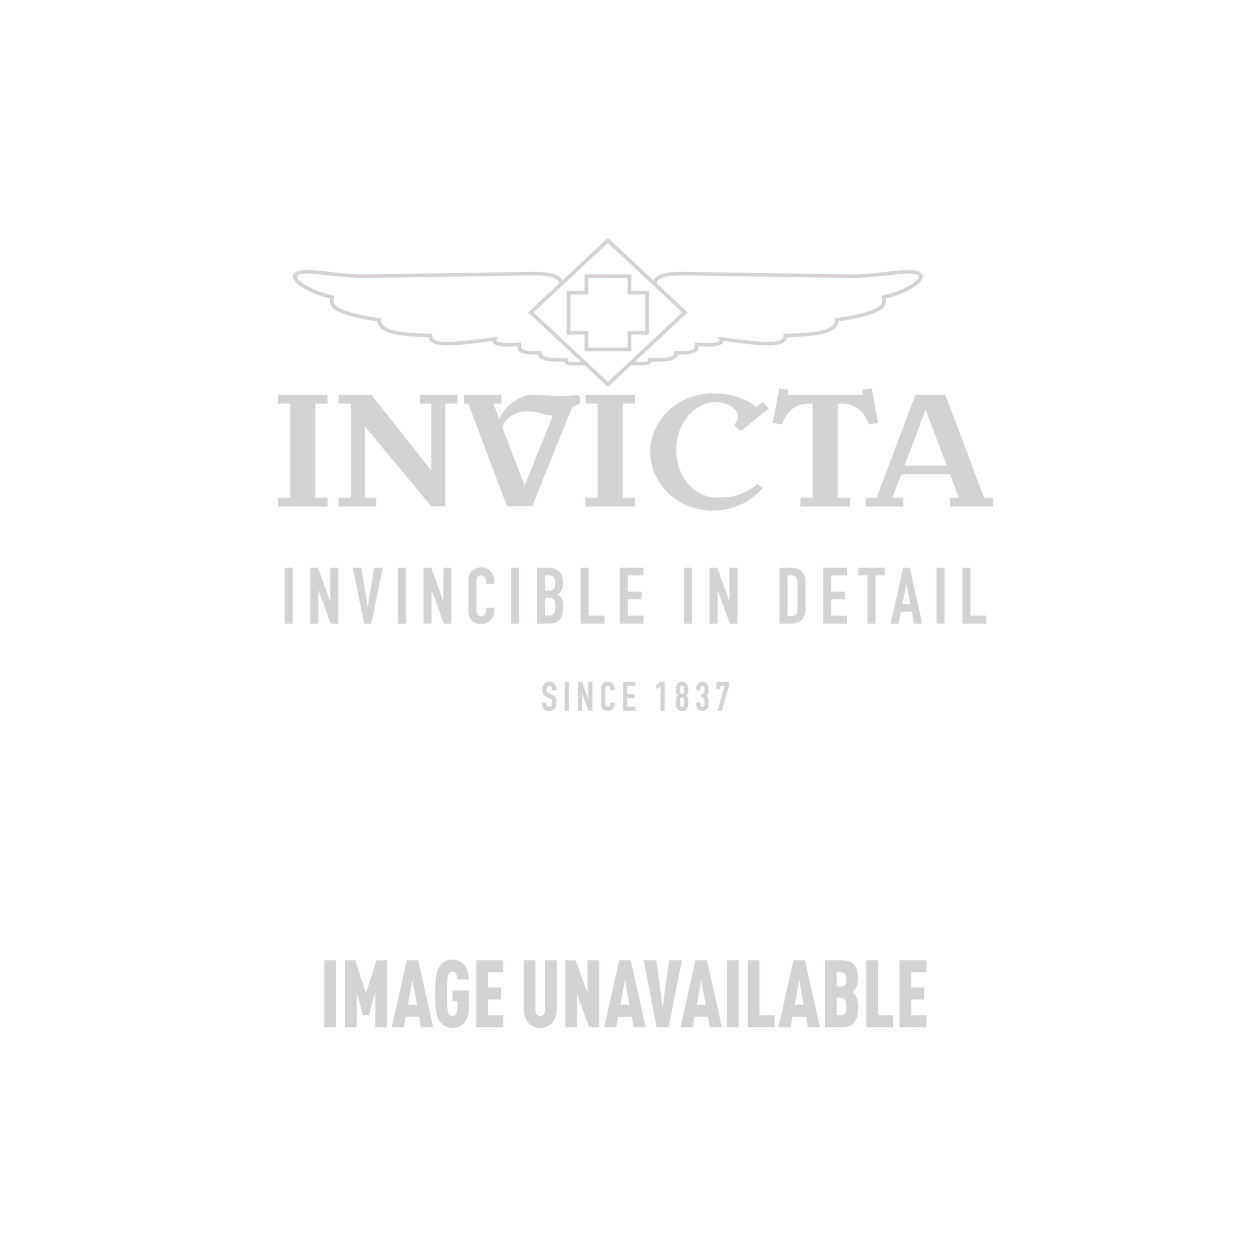 Invicta DNA Swiss Movement Quartz Watch - Stainless Steel case with Black tone Silicone band - Model 10446